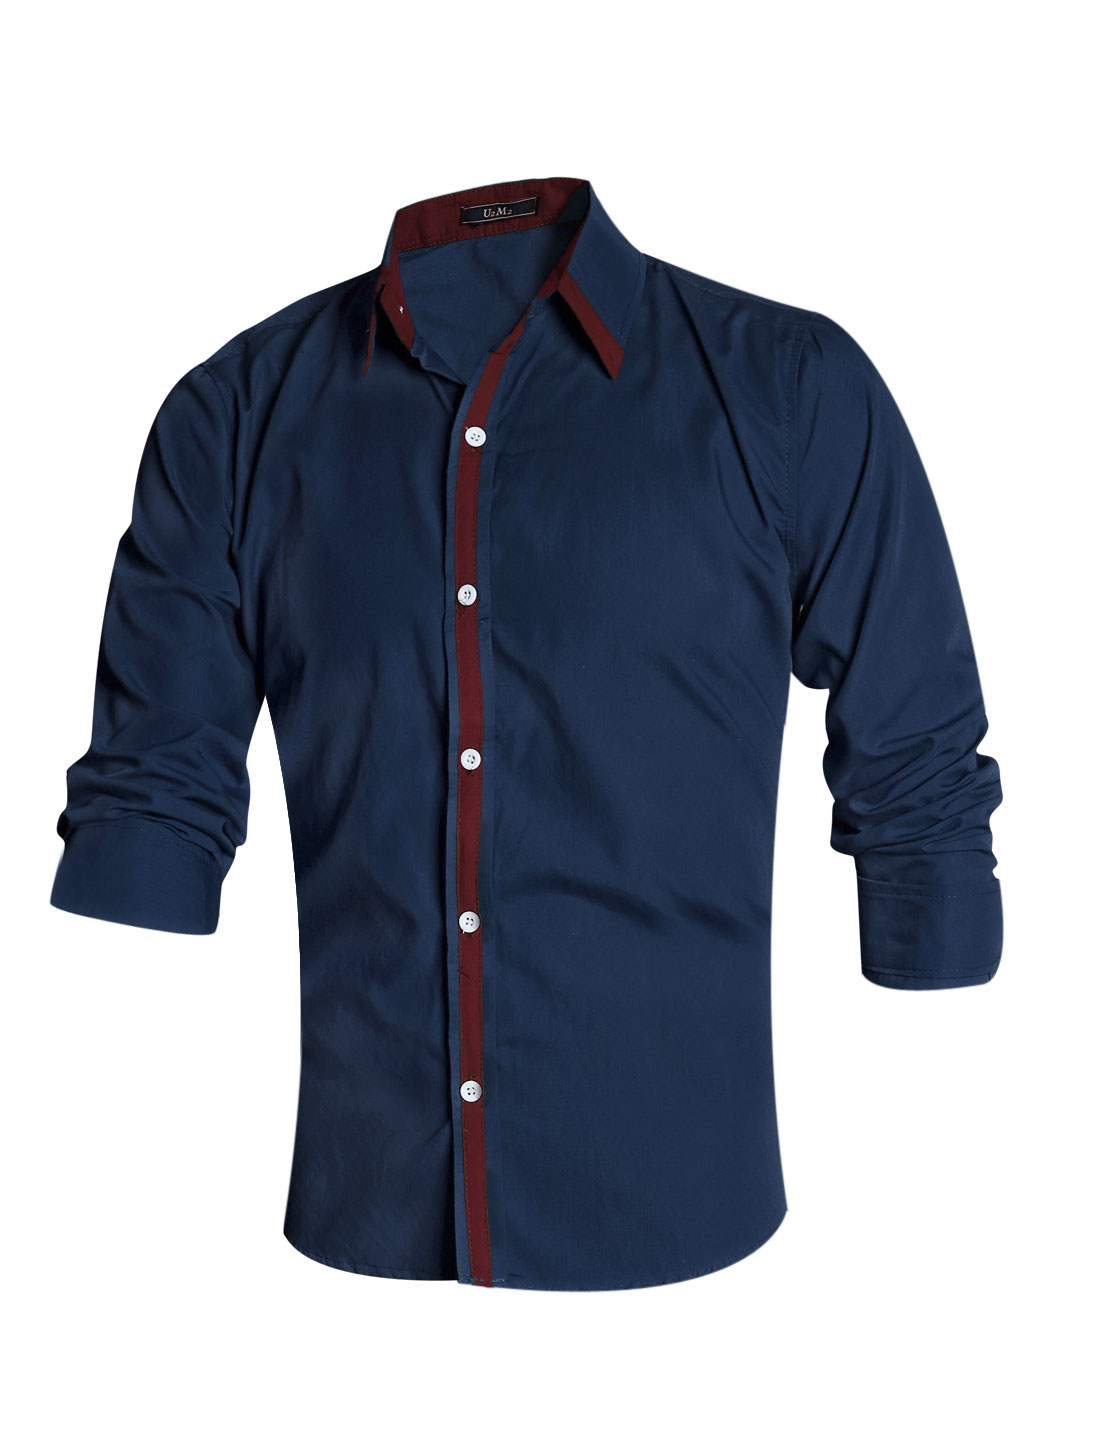 Men Navy Blue Single Breasted Contrast Color Detail Slim Fit Casual Shirt M